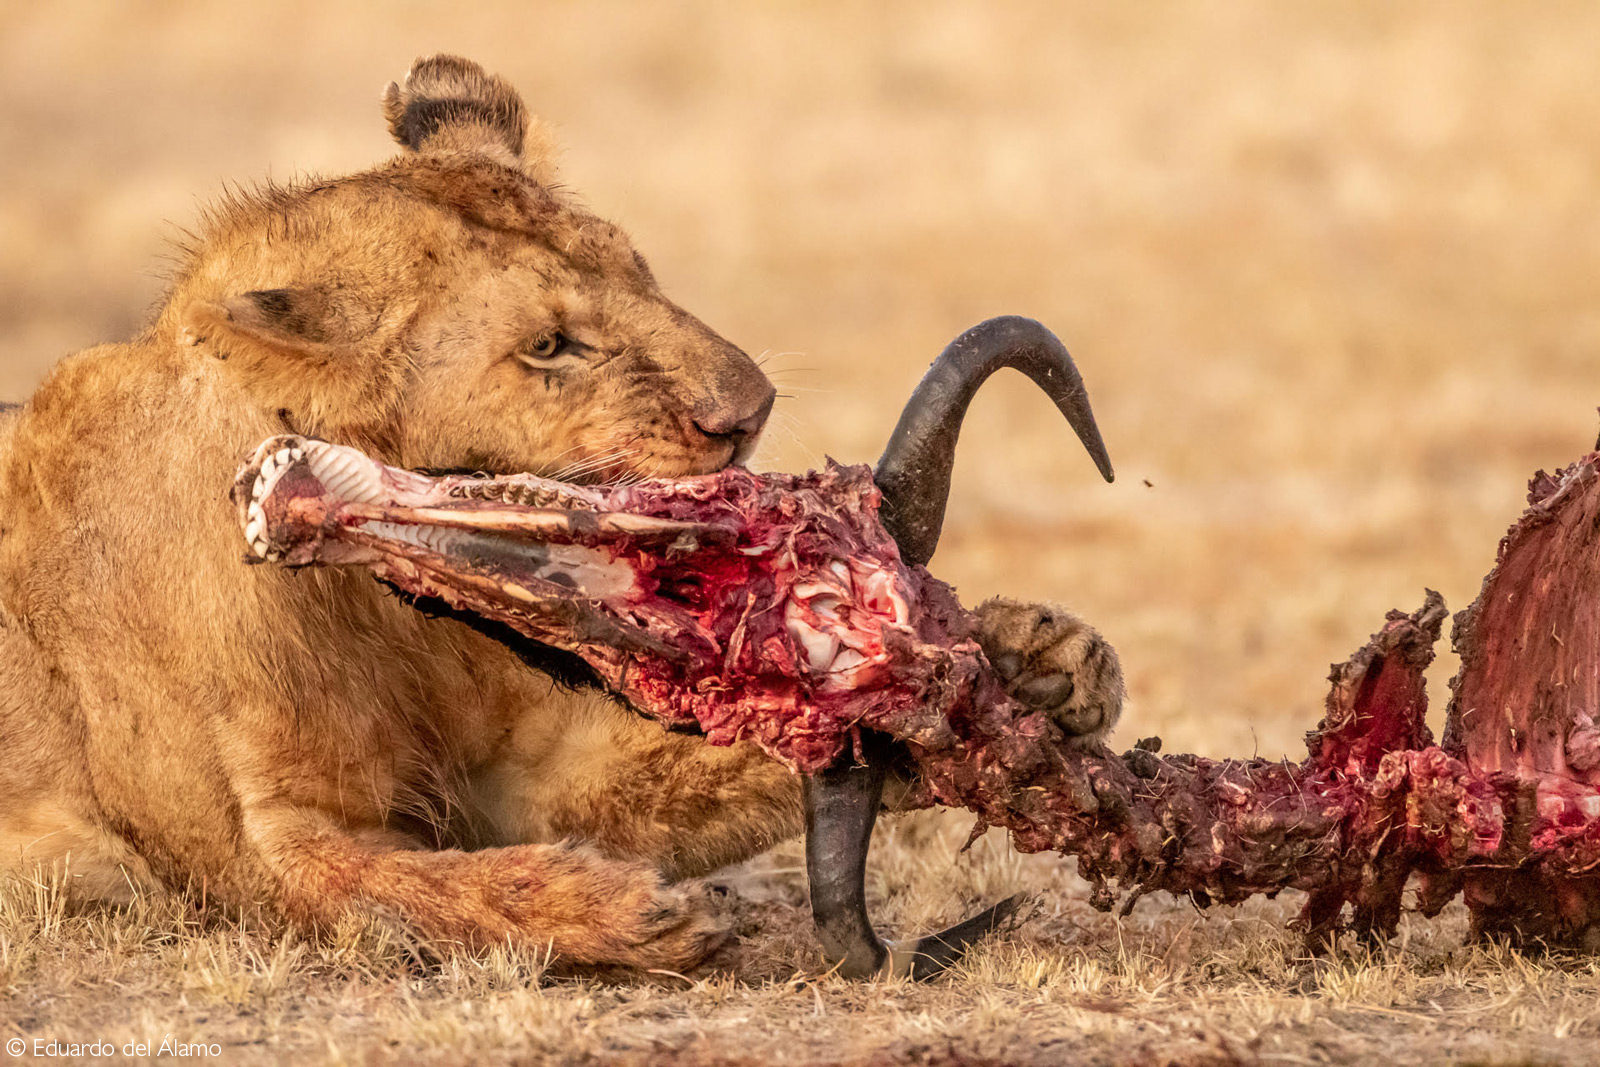 A young lion chews on the remains of a wildebeest. Maasai Mara National Reserve, Kenya © Eduardo del Alamo